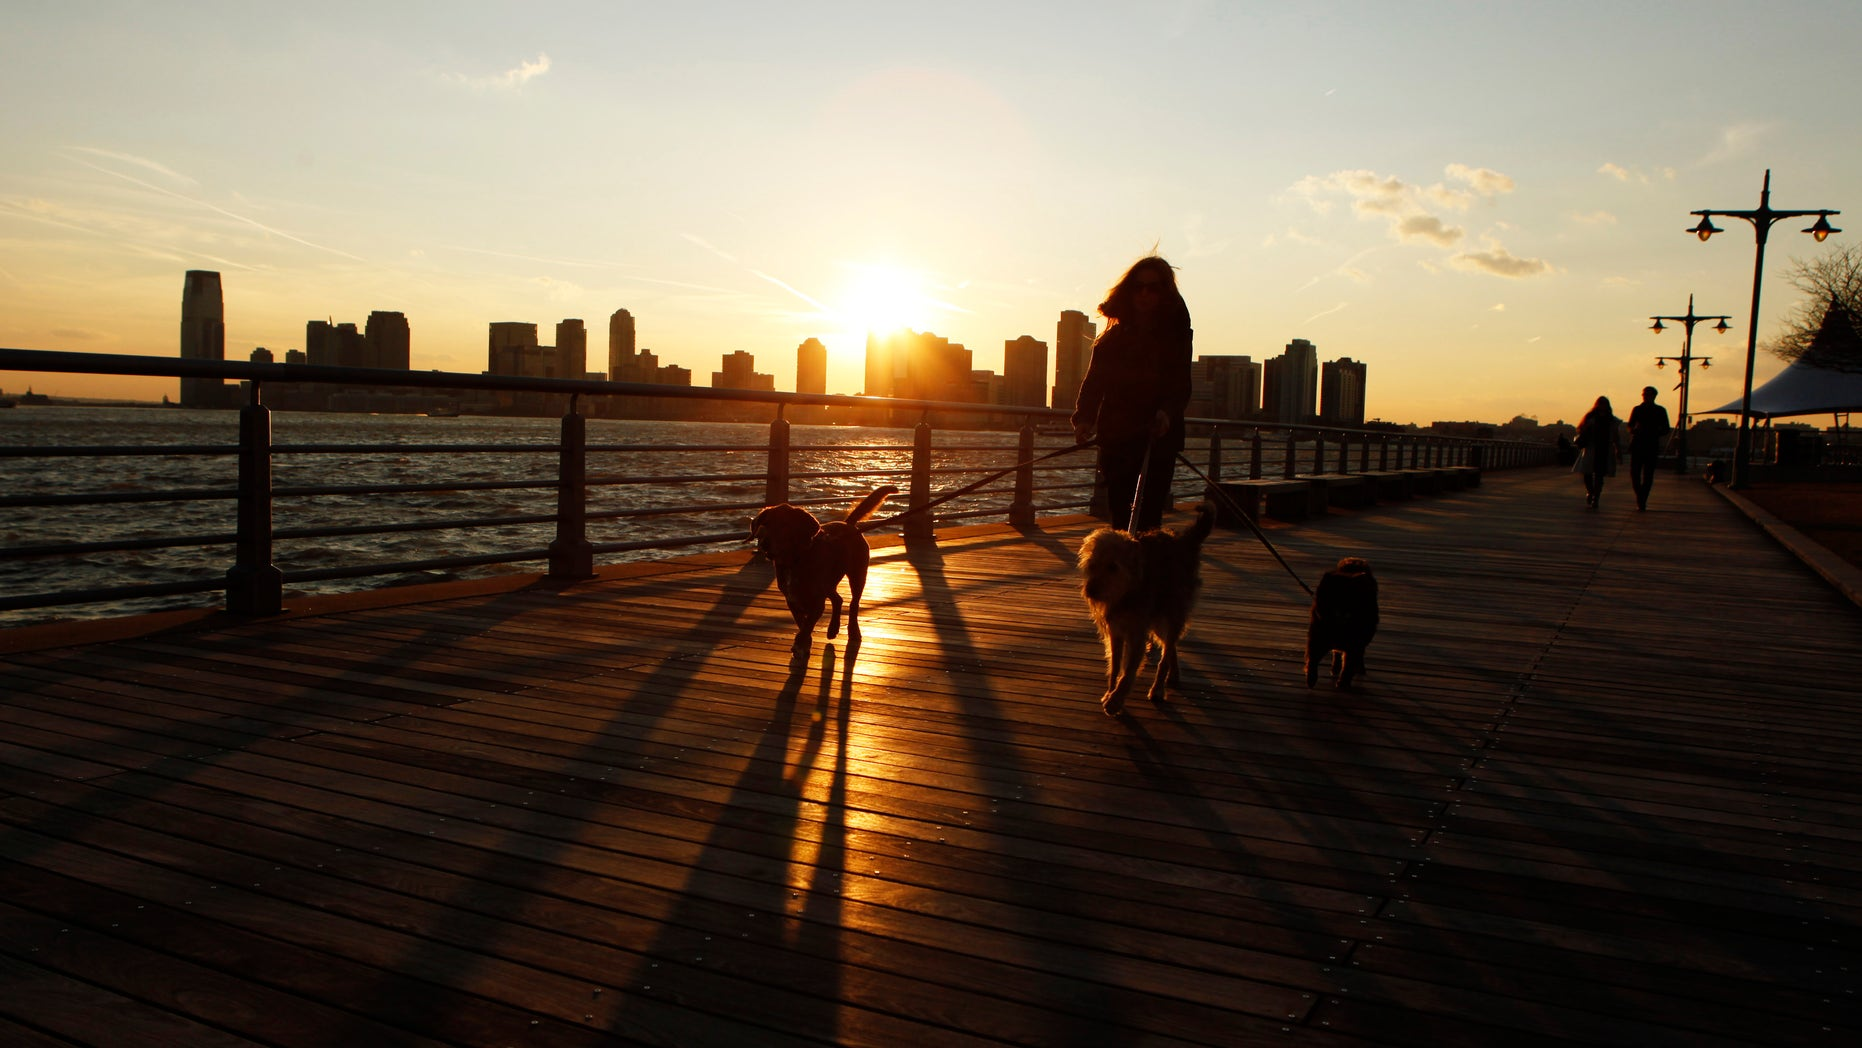 A woman walks three dogs along the West Side Highway as the sun sets behind them after an unseasonably warm winter day in New York, February 1, 2012. REUTERS/Lucas Jackson (UNITED STATES - Tags: ENVIRONMENT ANIMALS SOCIETY) - RTR2X6NH